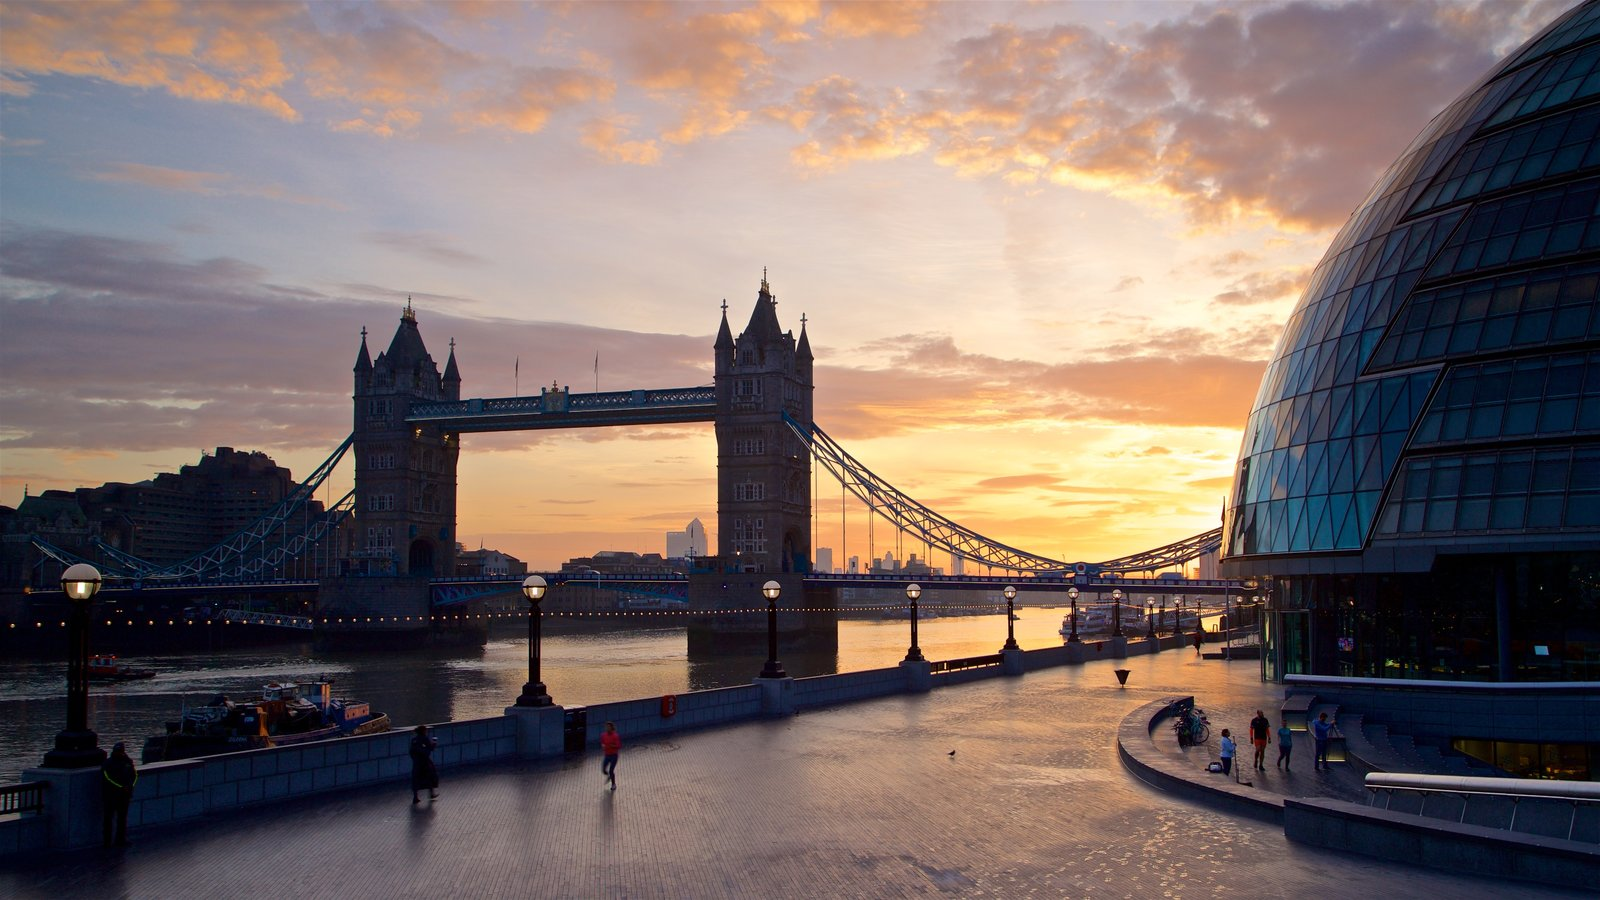 Tower Bridge which includes landscape views, a sunset and a bridge